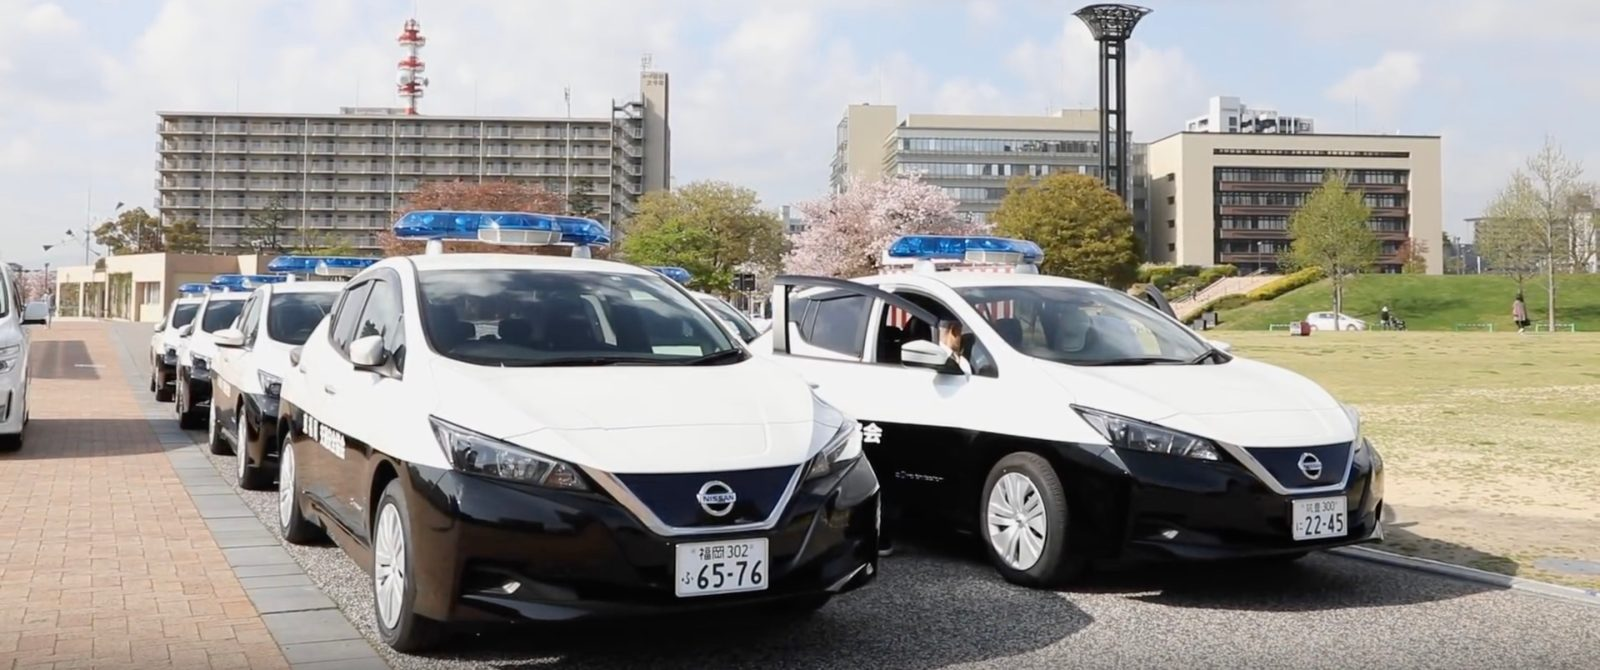 a fleet of new all-electric nissan leafs has been turned into police